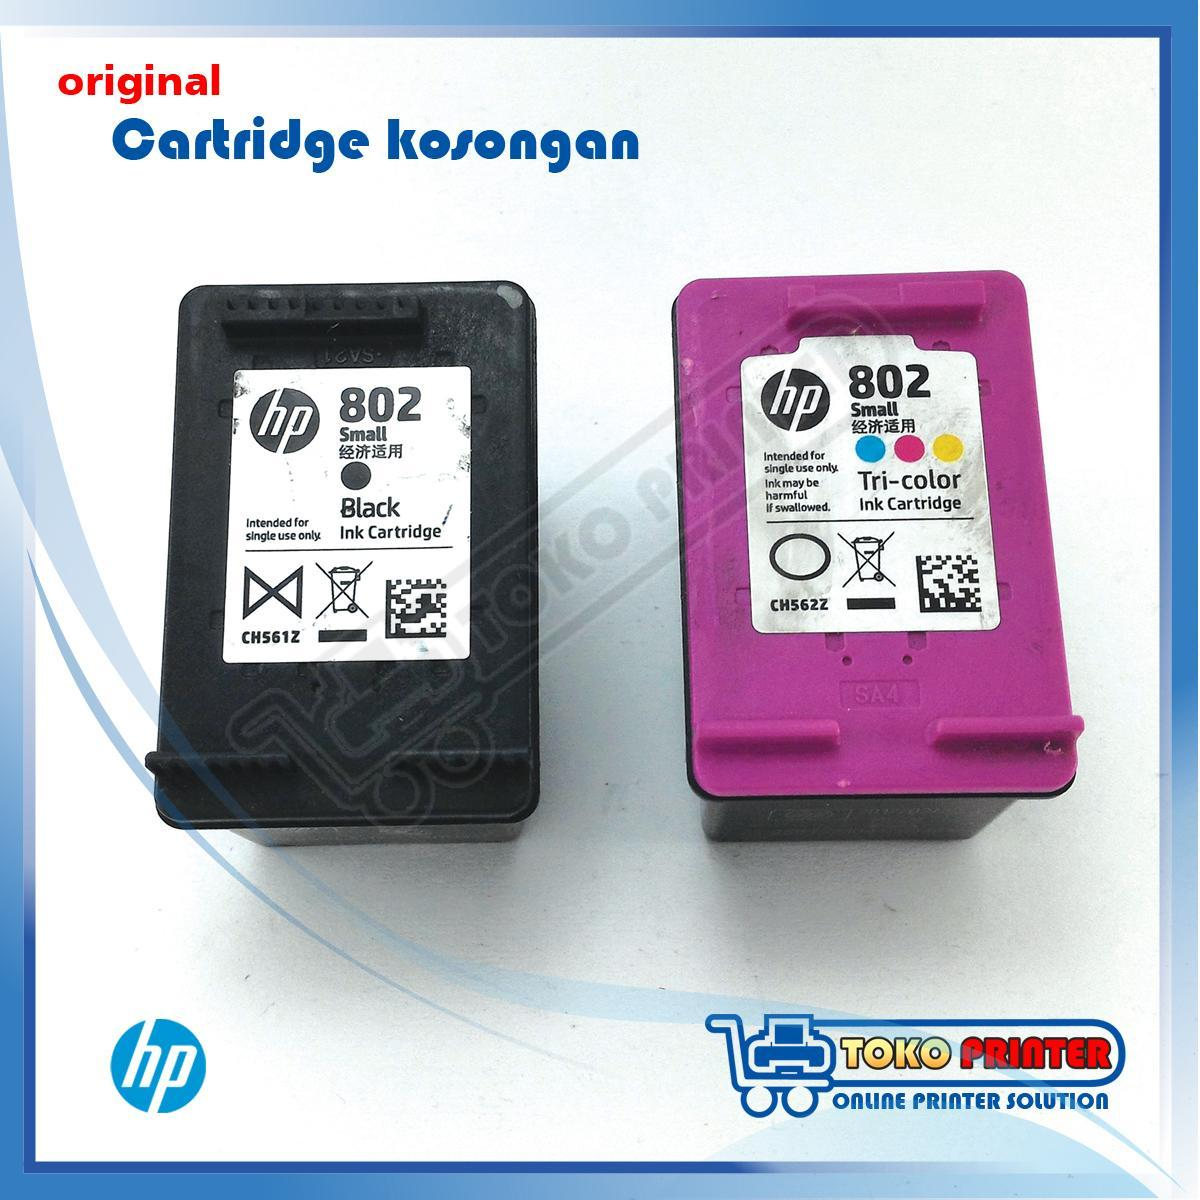 Cartridge Kosongan HP 802 Warna+Hitam